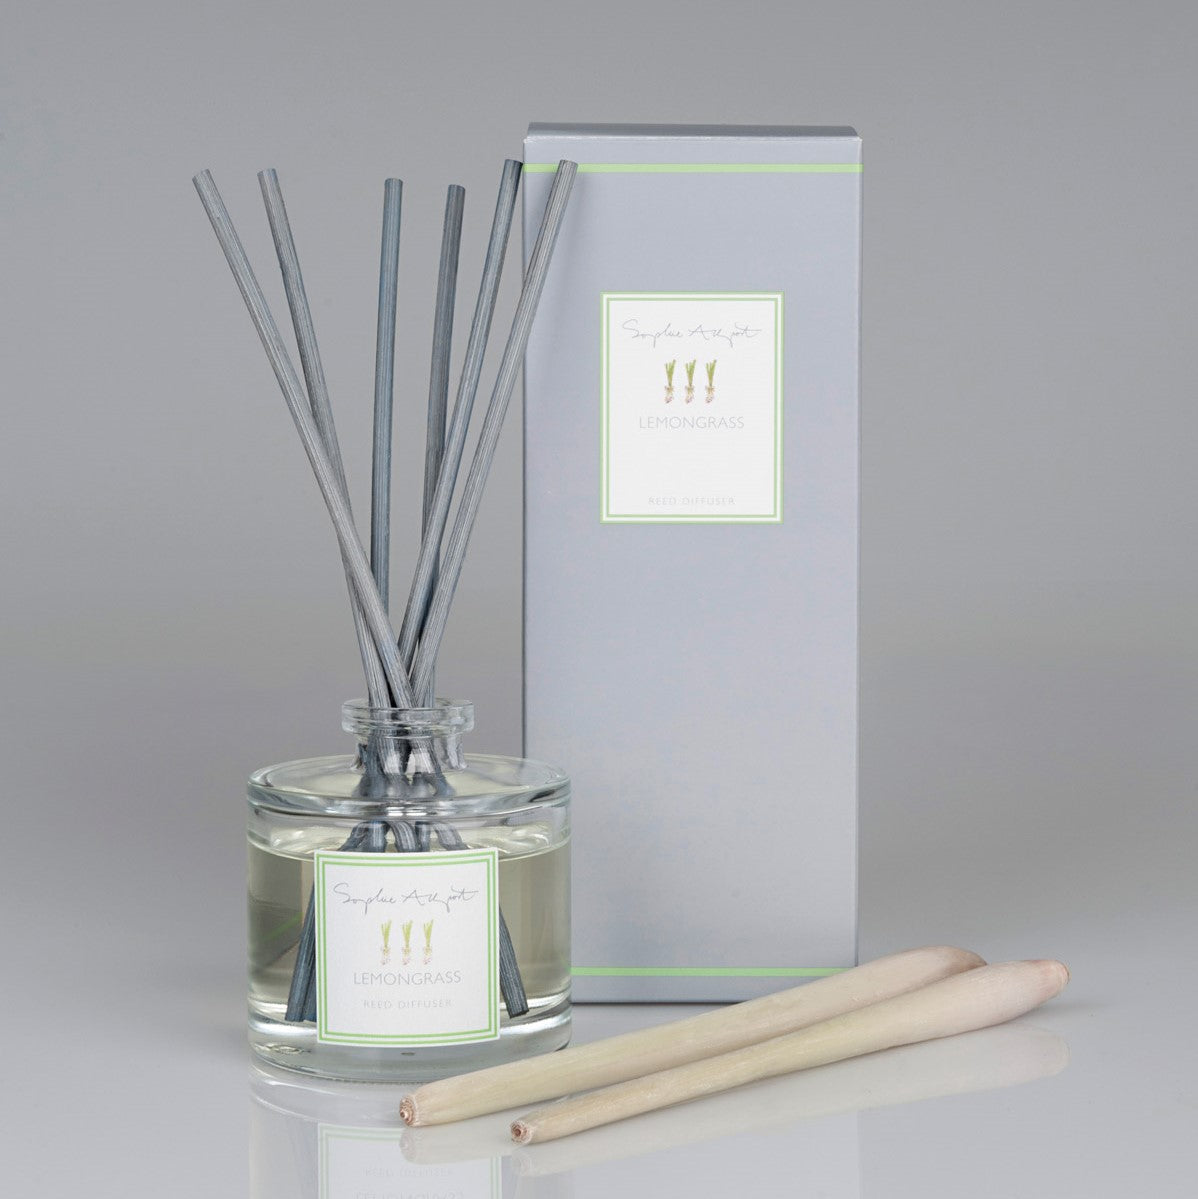 Scents to change your mood - lemongrass by Sophie Allport